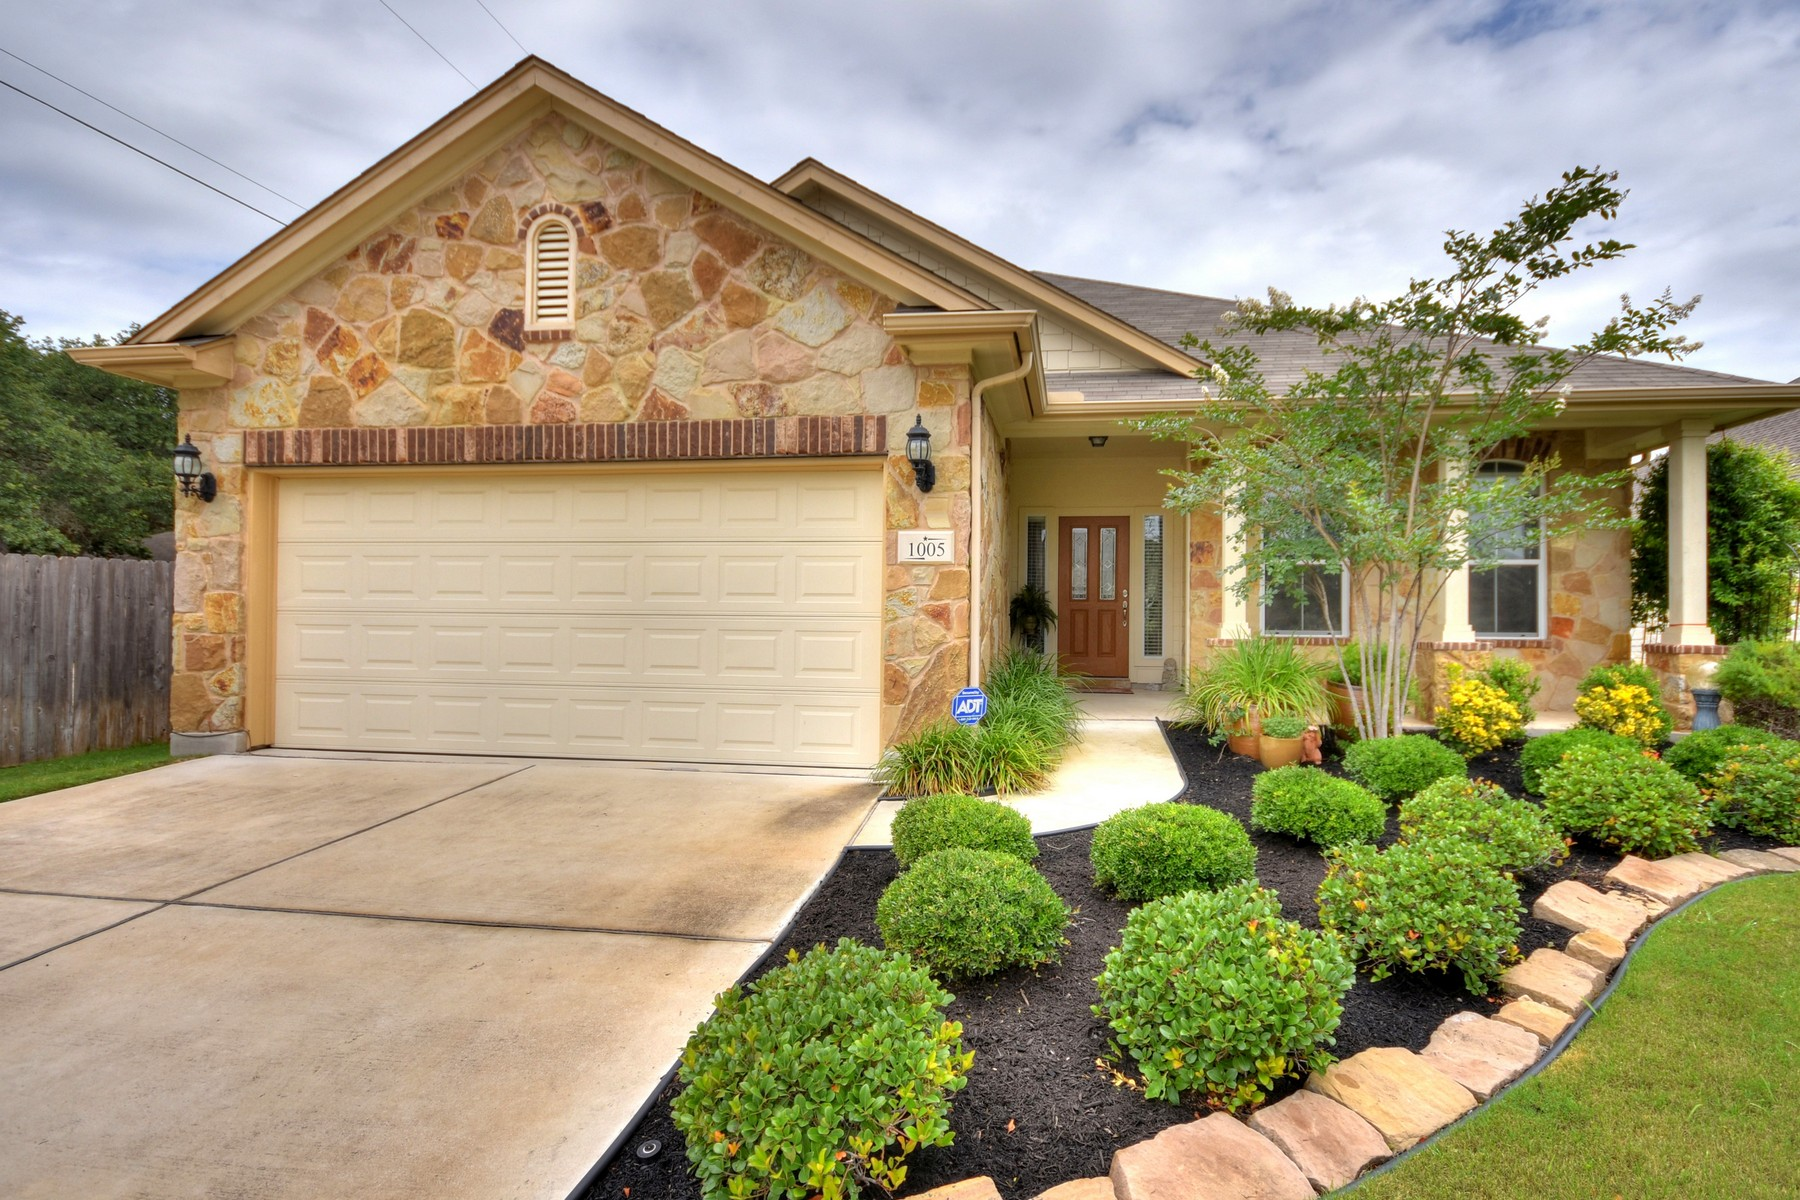 Single Family Home for Sale at Adorable Single-story in West Park Estate 1005 Retama Dr Cedar Park, Texas 78613 United States